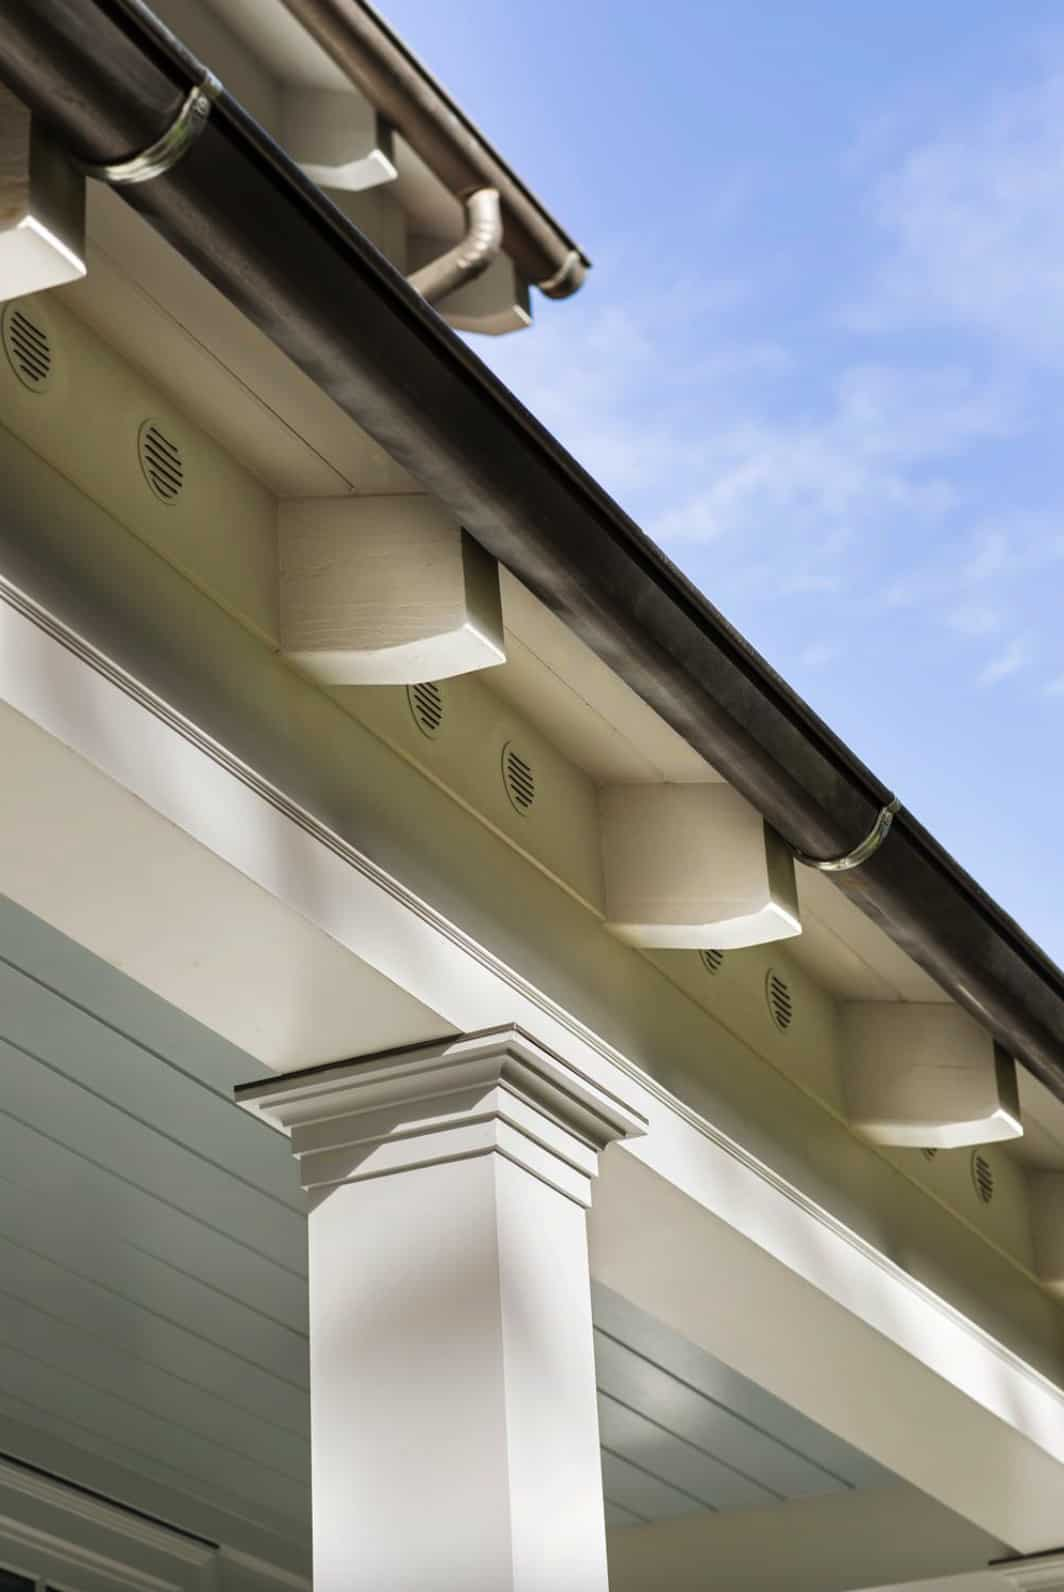 eave-and-gutter-detail-traditional-house-exterior